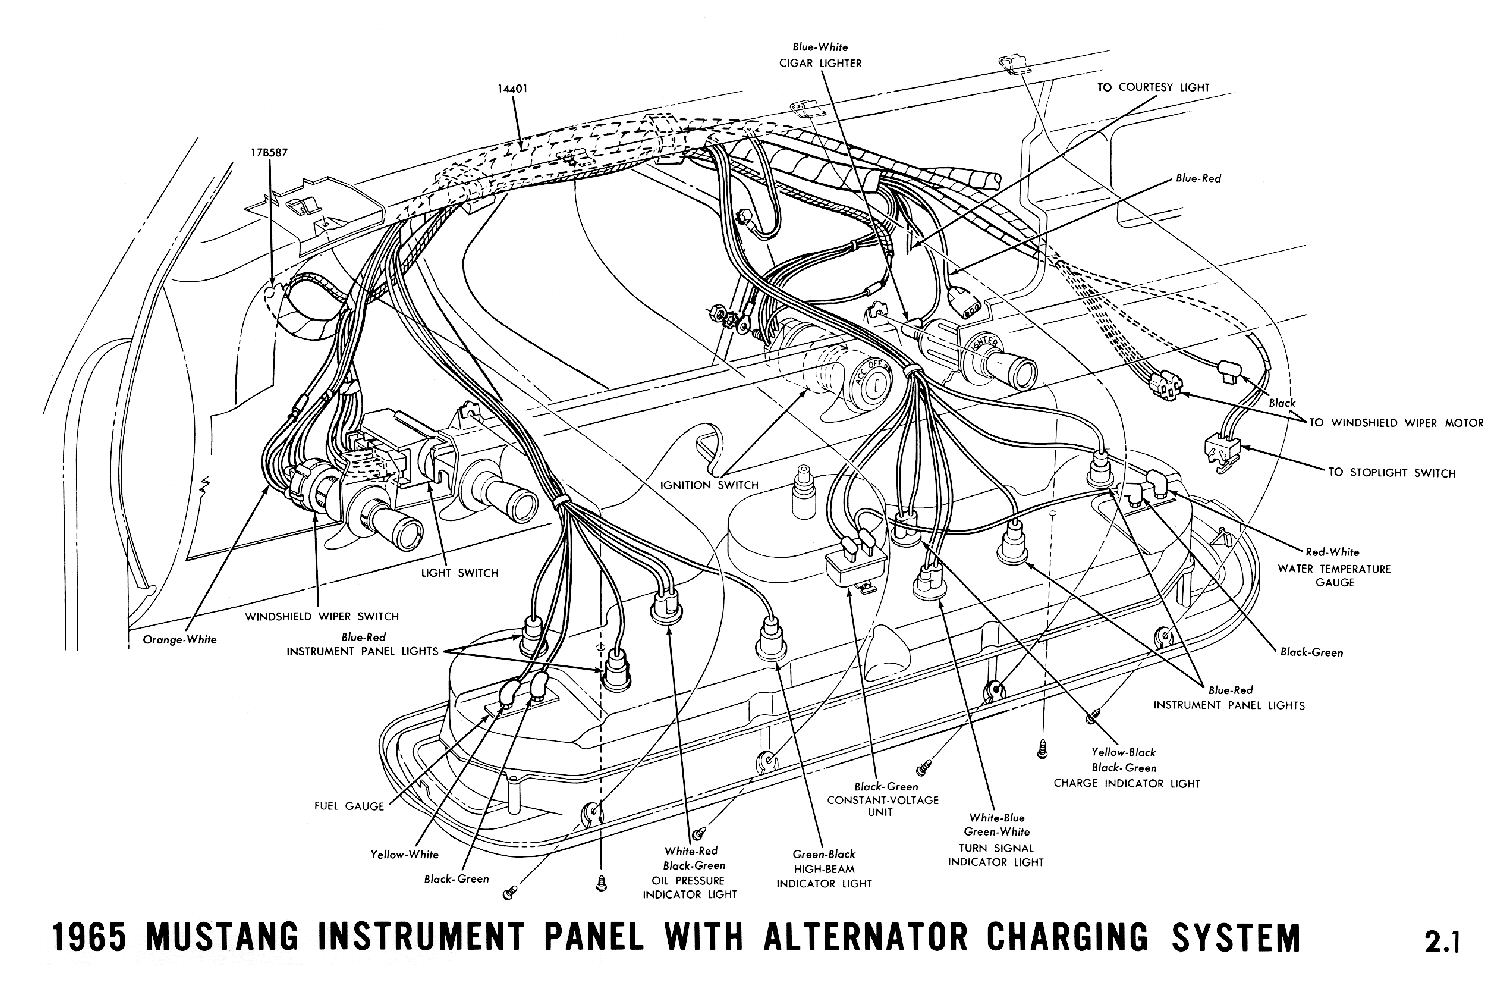 1965a 1965 mustang wiring diagrams average joe restoration 66 mustang ignition wiring diagram at crackthecode.co